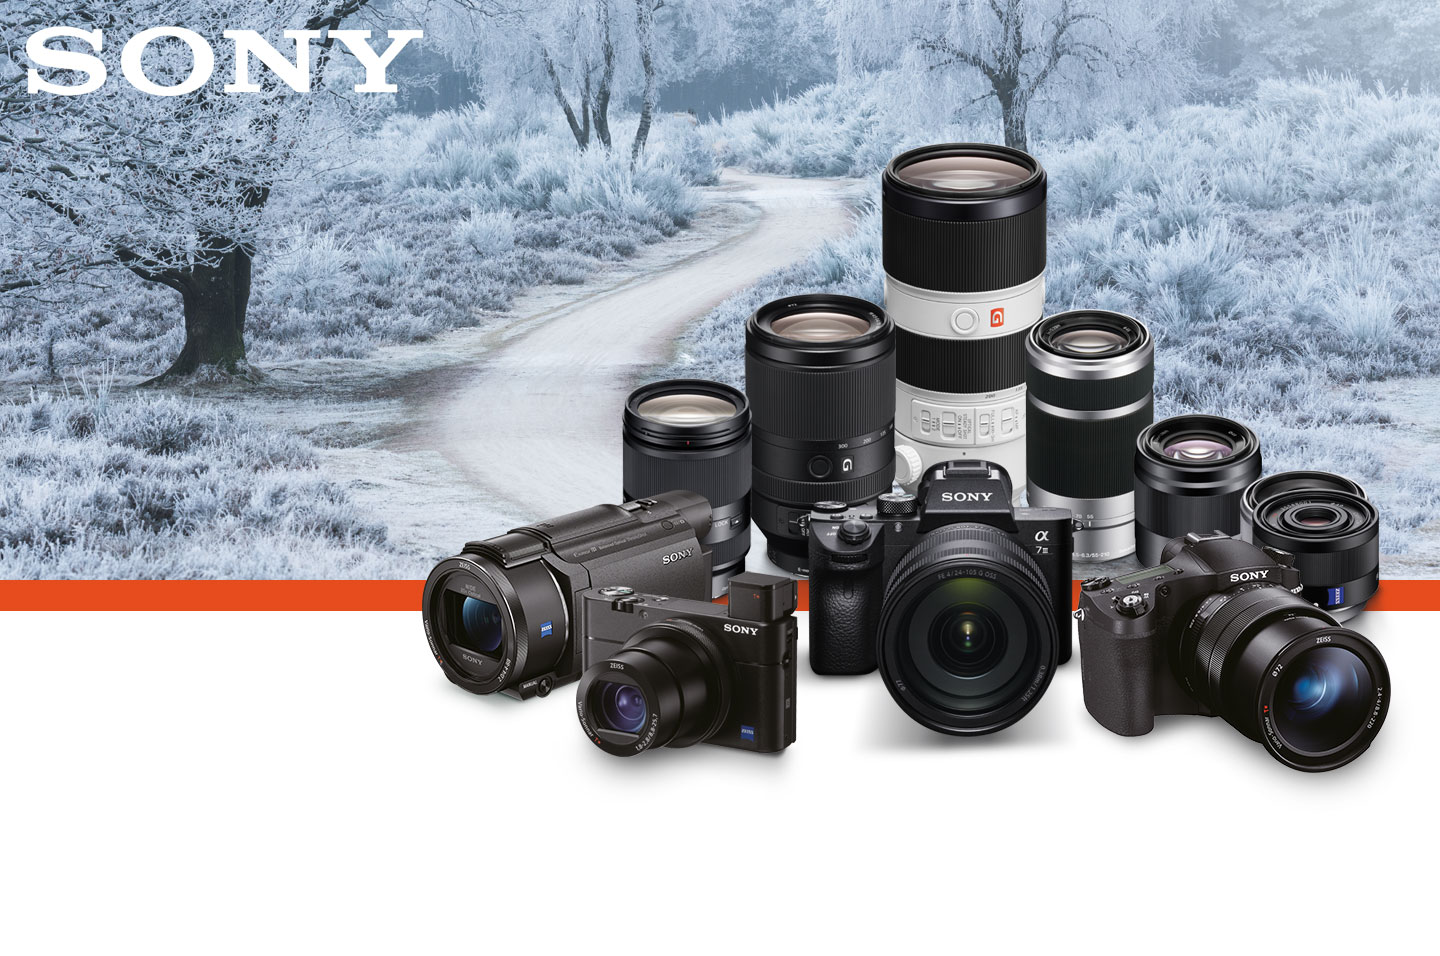 Sony_Winter